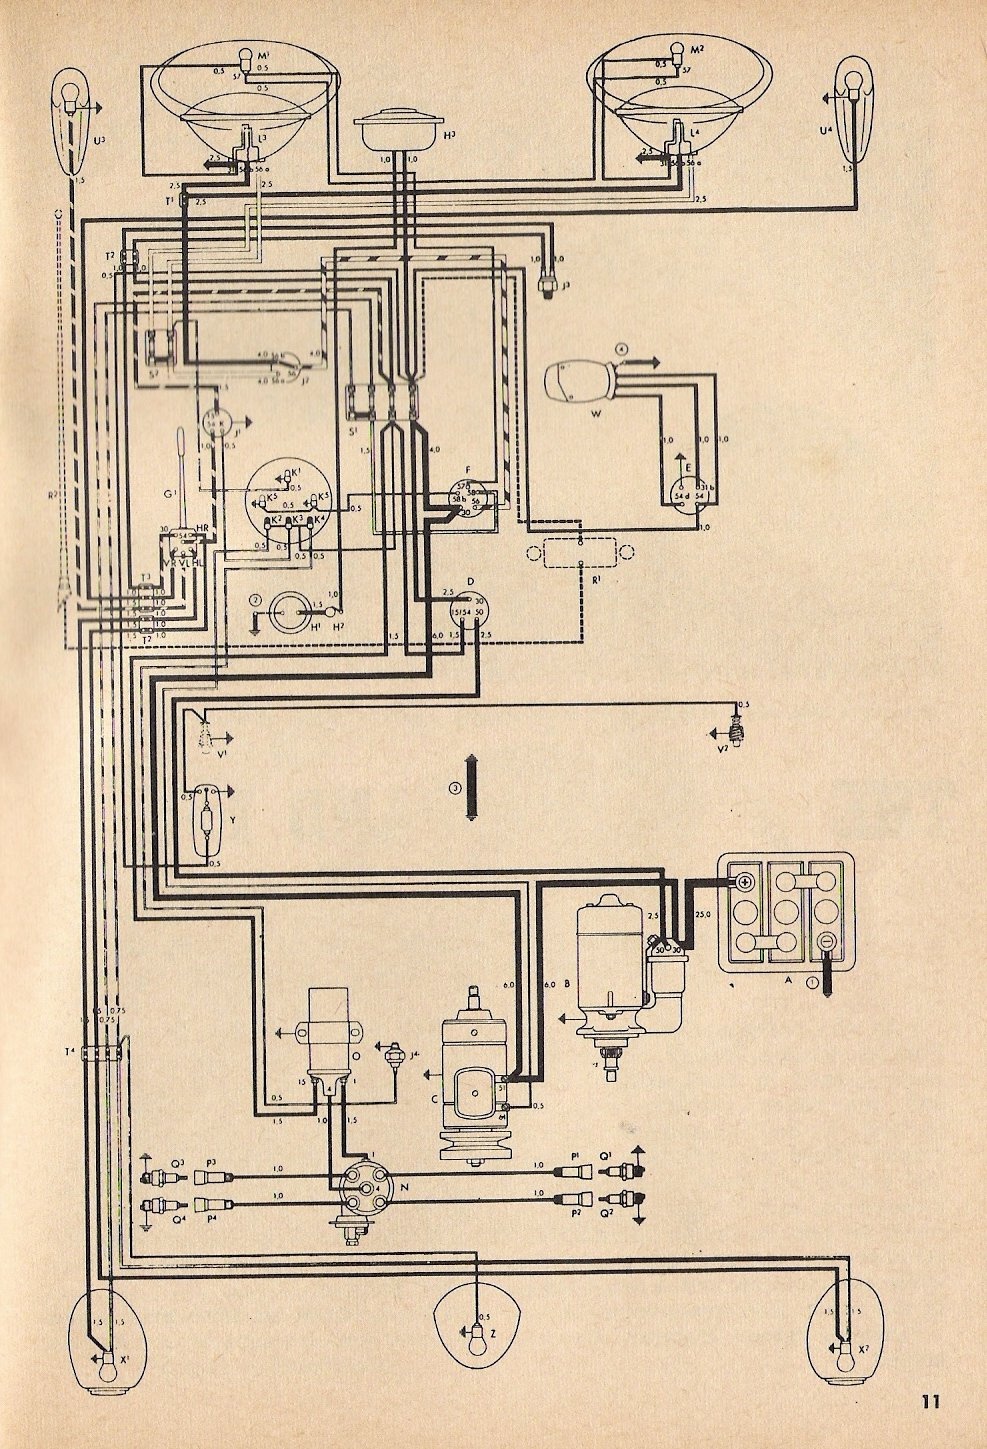 1957 beetle wiring diagram thegoldenbug com key fuse box